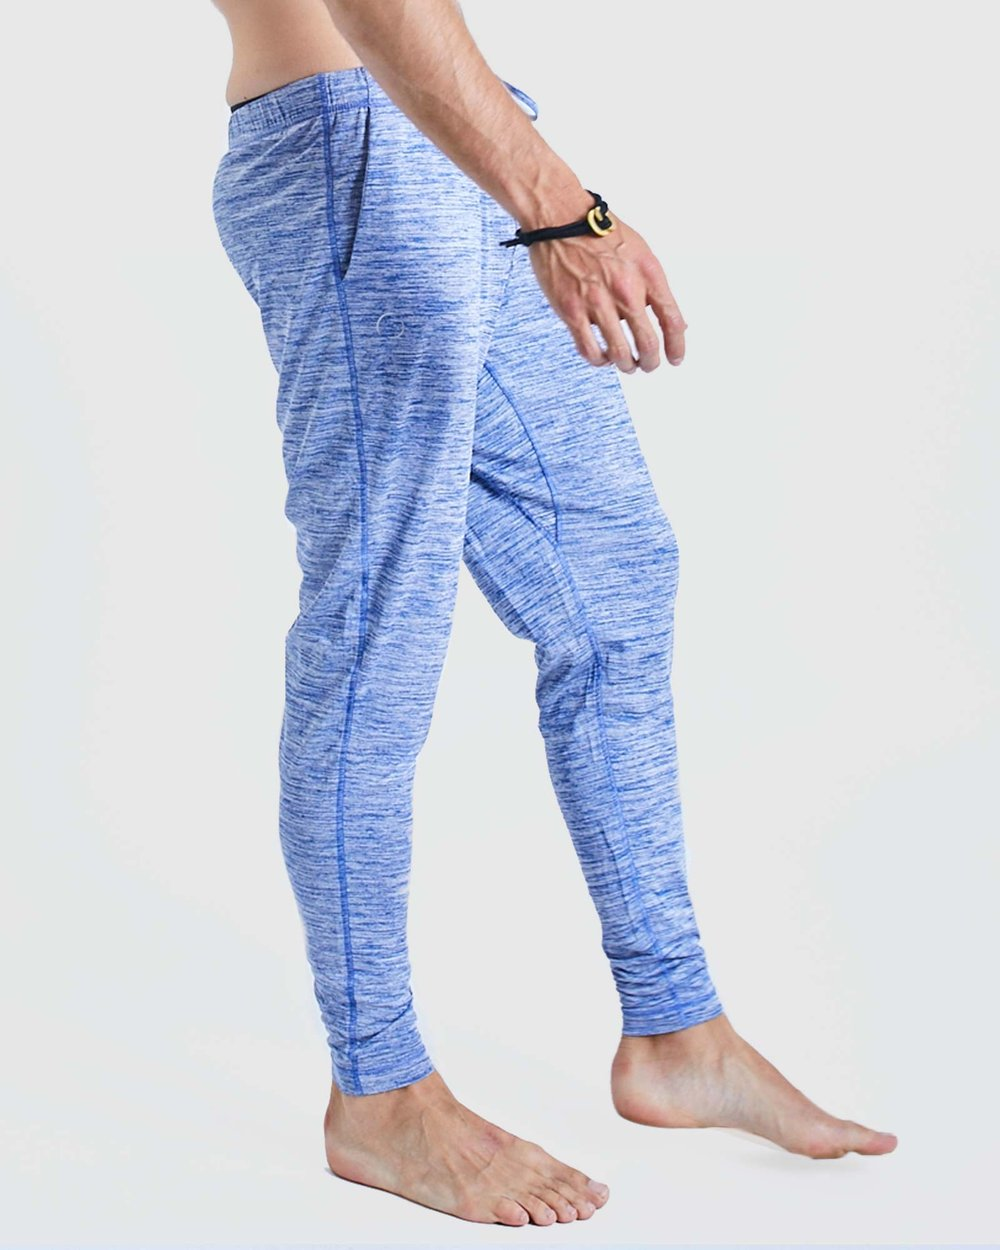 2f99b255bf Dharma Men's Yoga Pants by OHMME Online | THE ICONIC | Australia